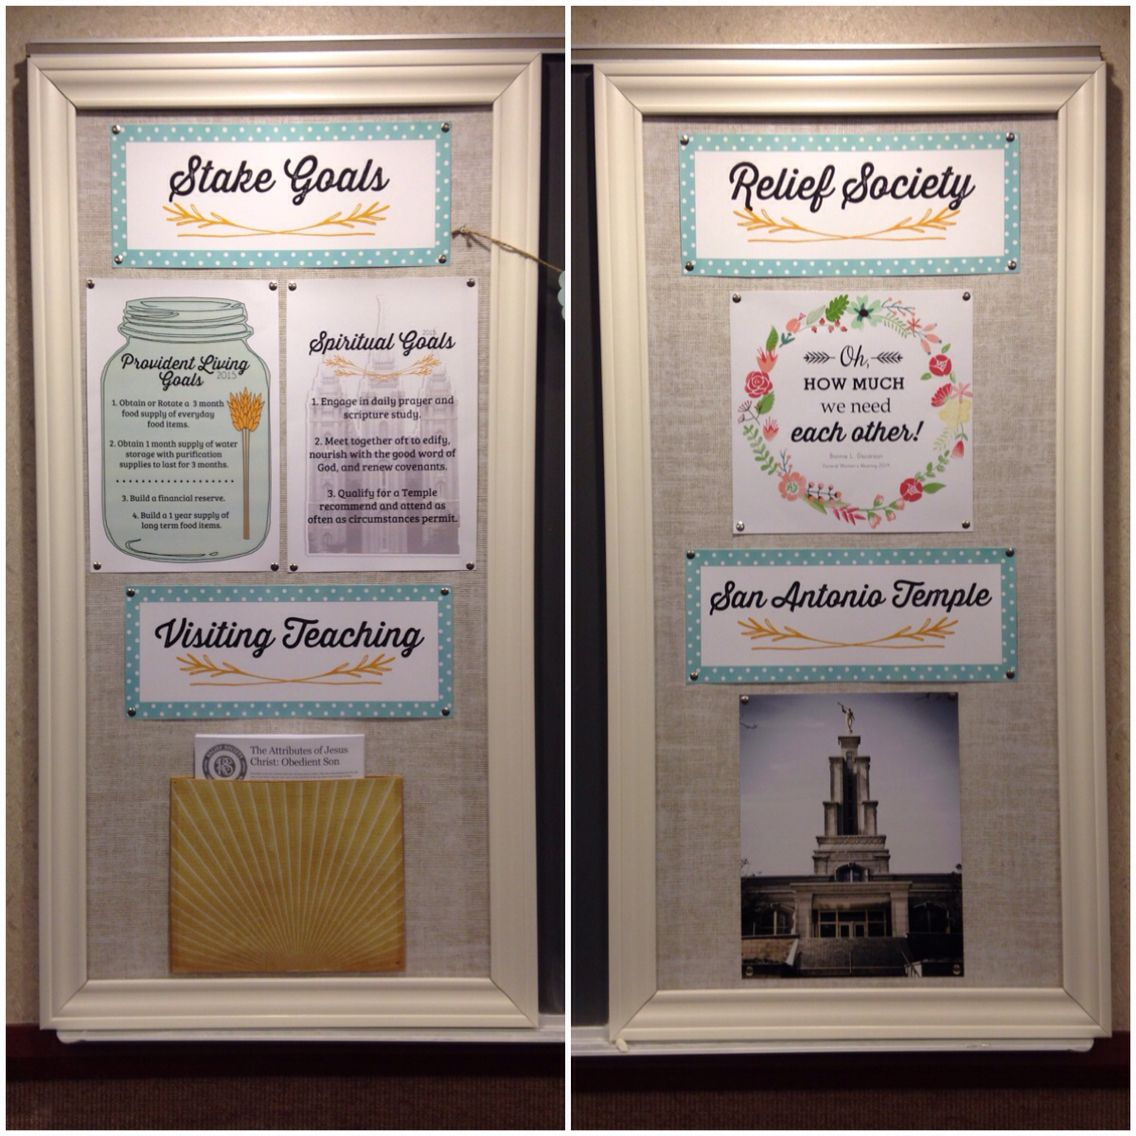 Relief Society Lesson November 2019 Ideas For Missionary Work Relief Society bulletin board makeover. | Relief Society | Relief